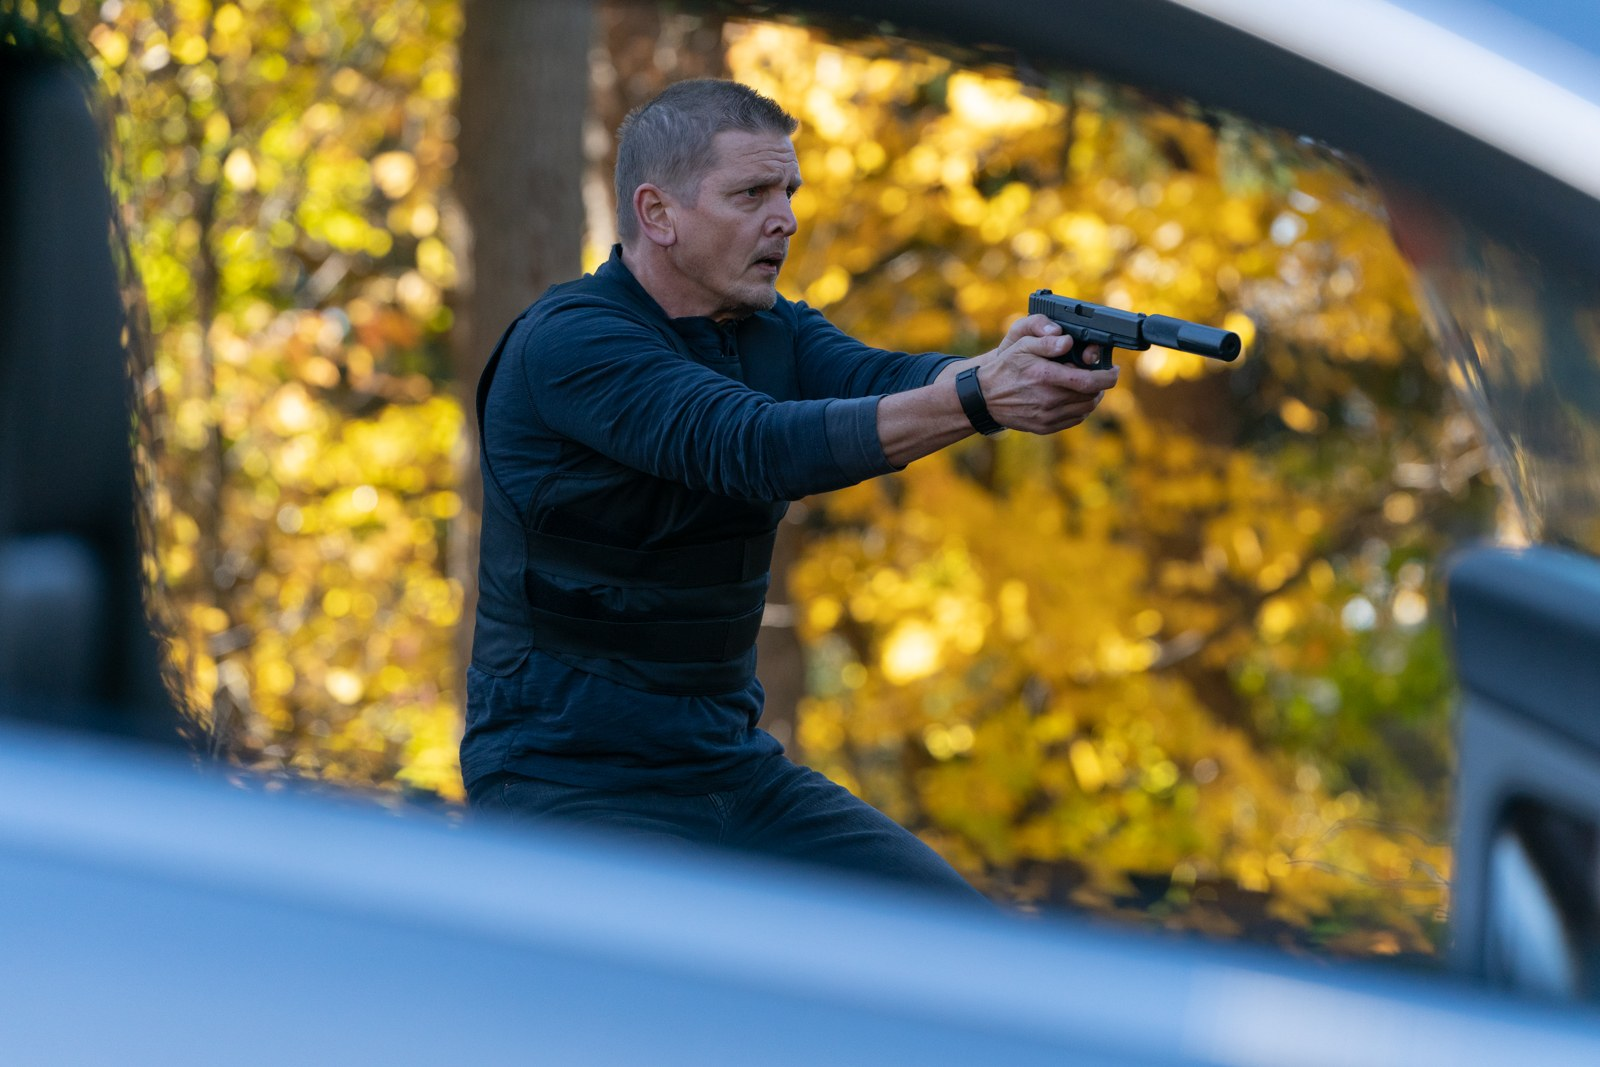 Barry Pepper in Trigger Point (2021)